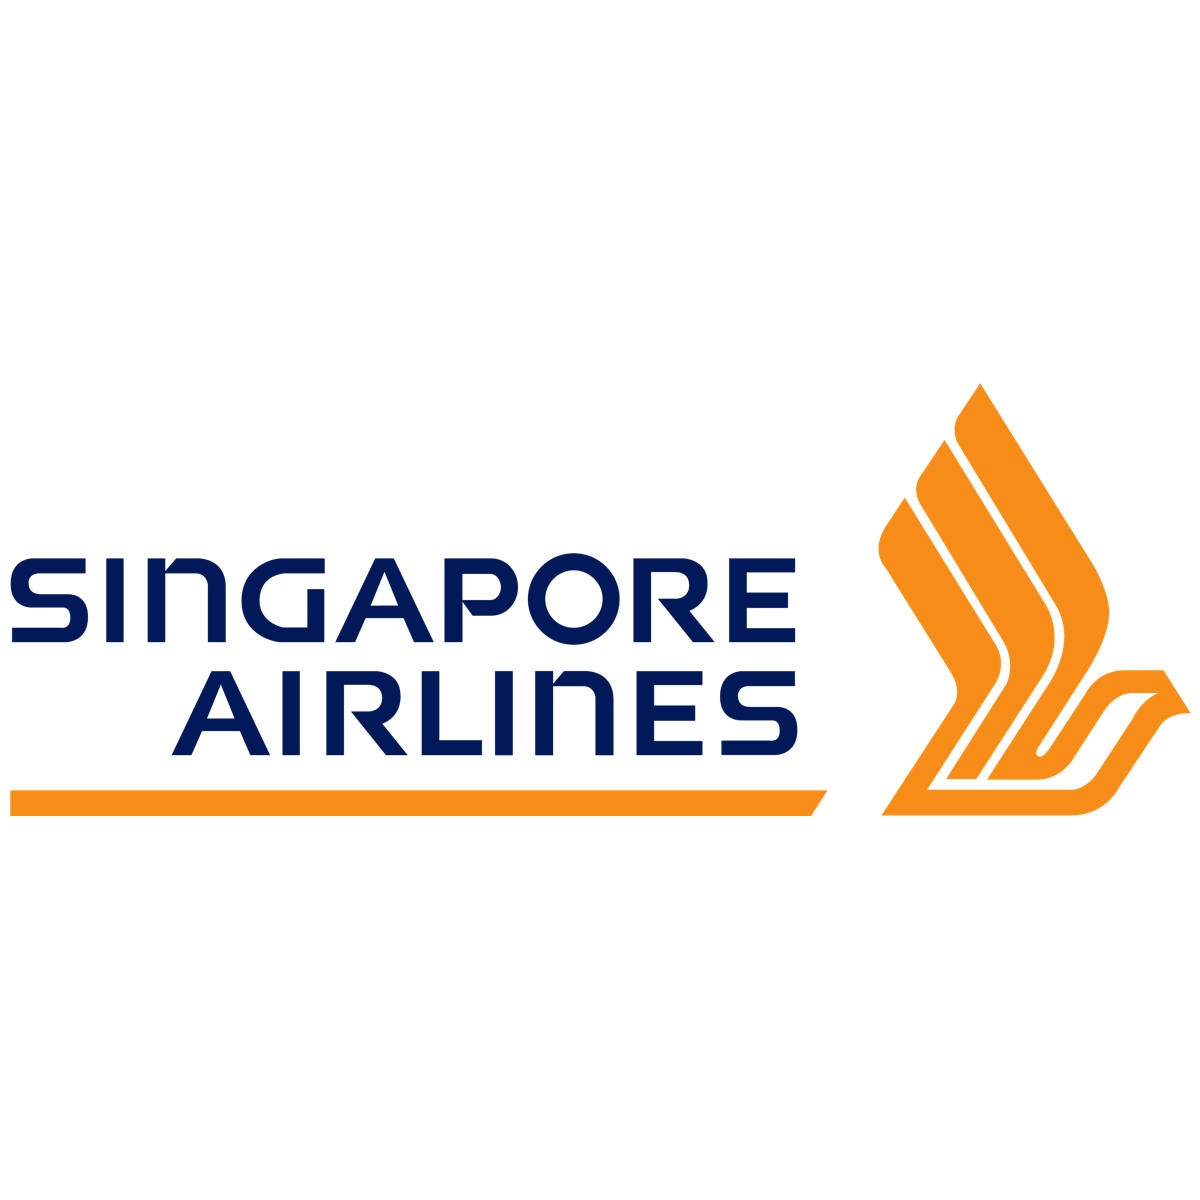 Singapore Airlines (SIA SP) - UOB Kay Hian 2018-01-03: Upgrade To BUY On Expected Pax Yield And Cargo Recovery